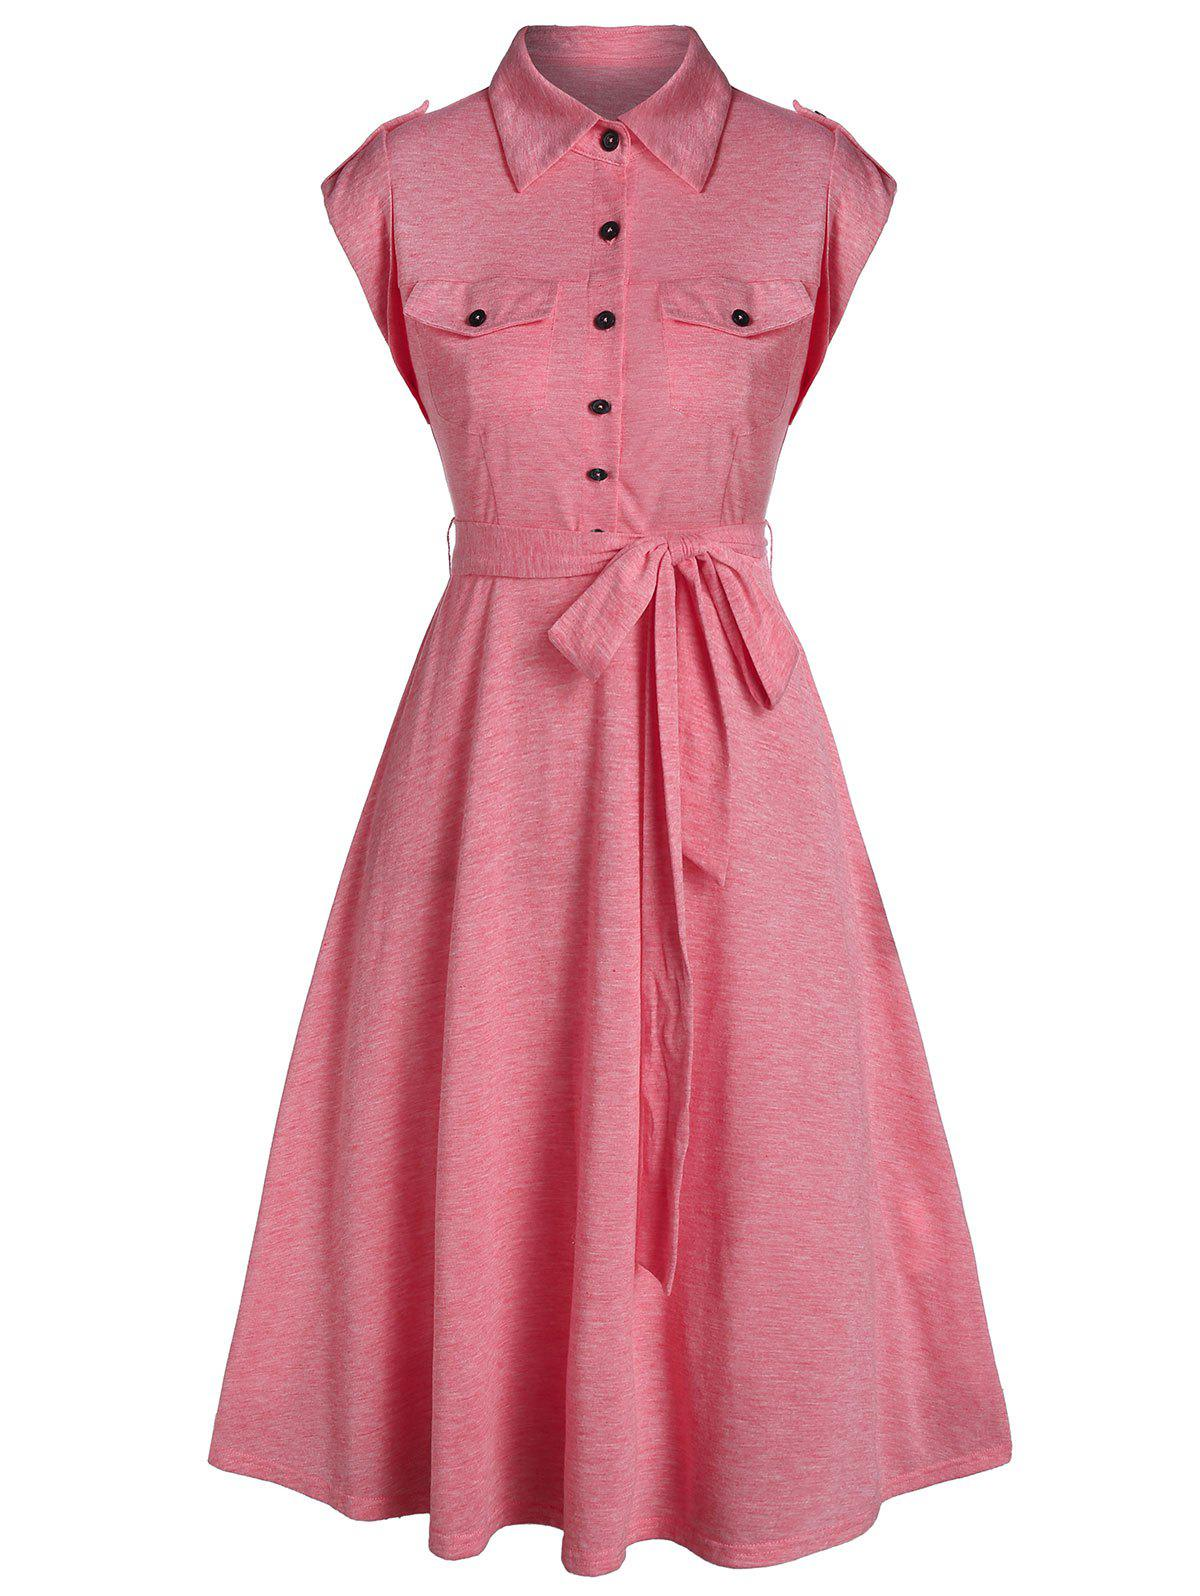 New Double Pockets Half Button Belted Flare Dress